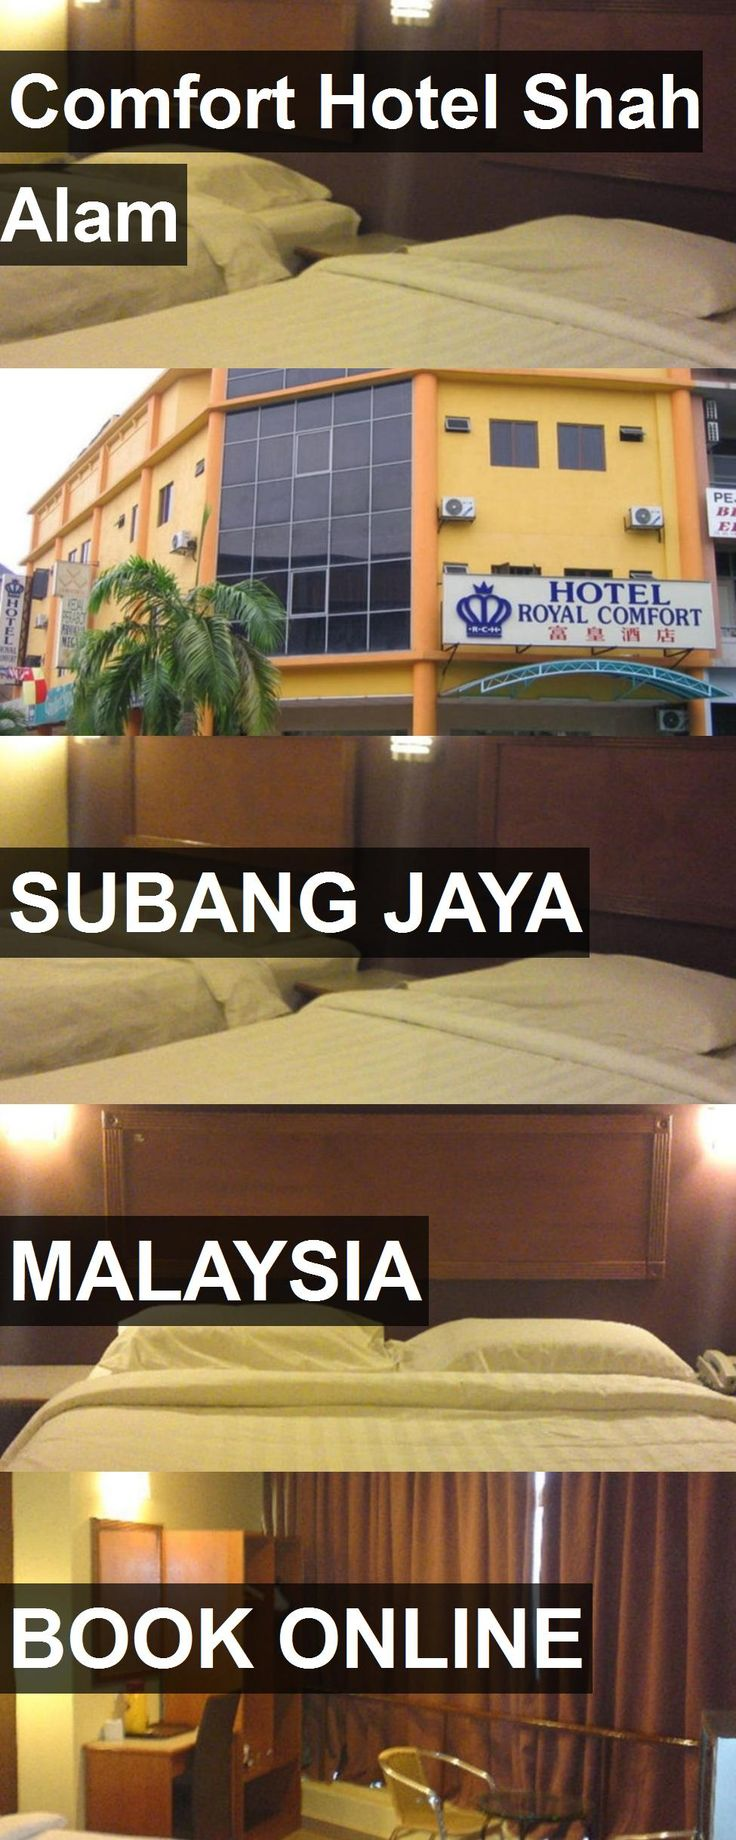 Comfort Hotel Shah Alam in Subang Jaya, Malaysia. For more information, photos, reviews and best prices please follow the link. #Malaysia #SubangJaya #travel #vacation #hotel